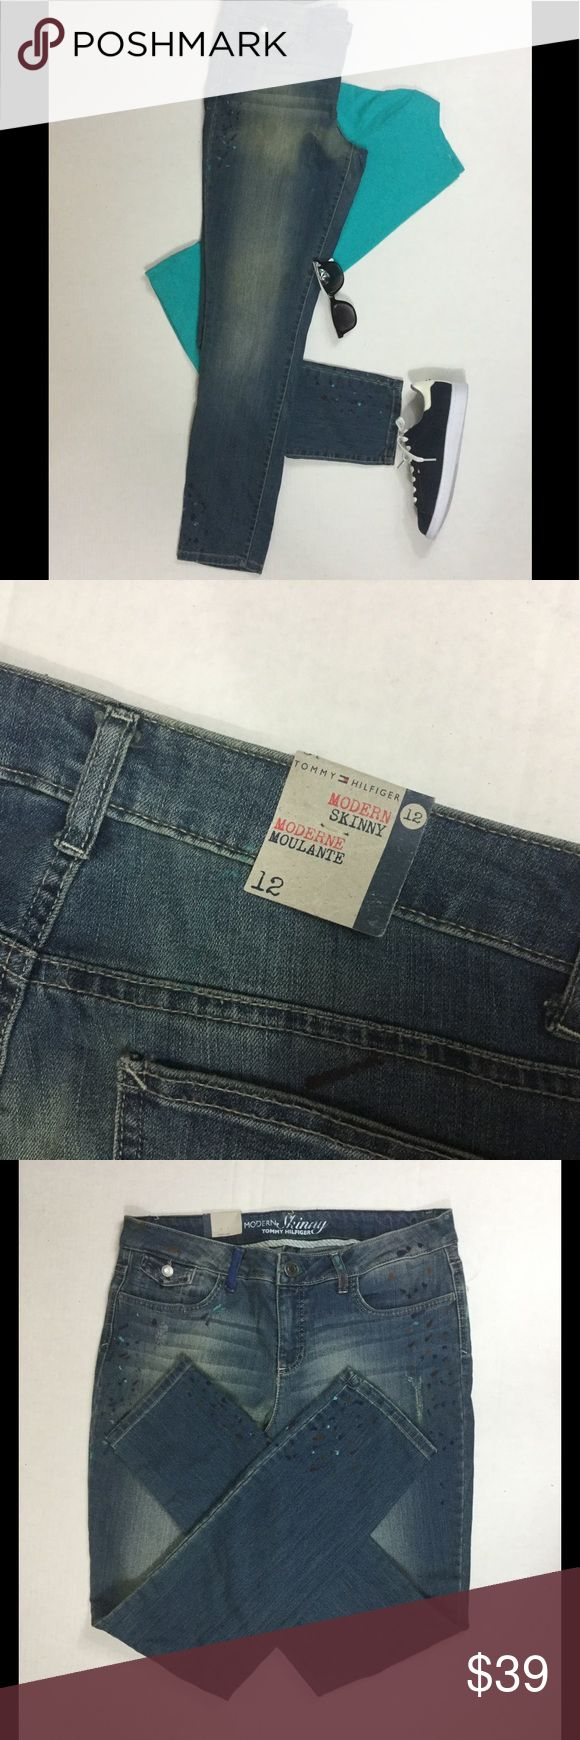 Modern Skinny Jeans by Tommy - Painted Vintage Modern Skinny Jeans by Tommy Hilfiger - Painted Vintage. Jeans are lightly splattered @ the waist, hip & leg area in gold, teal, blue & brown. Size: 12 Inseam: 30.5 Lots of stretch to these jeans. Tommy Hilfiger Jeans Skinny